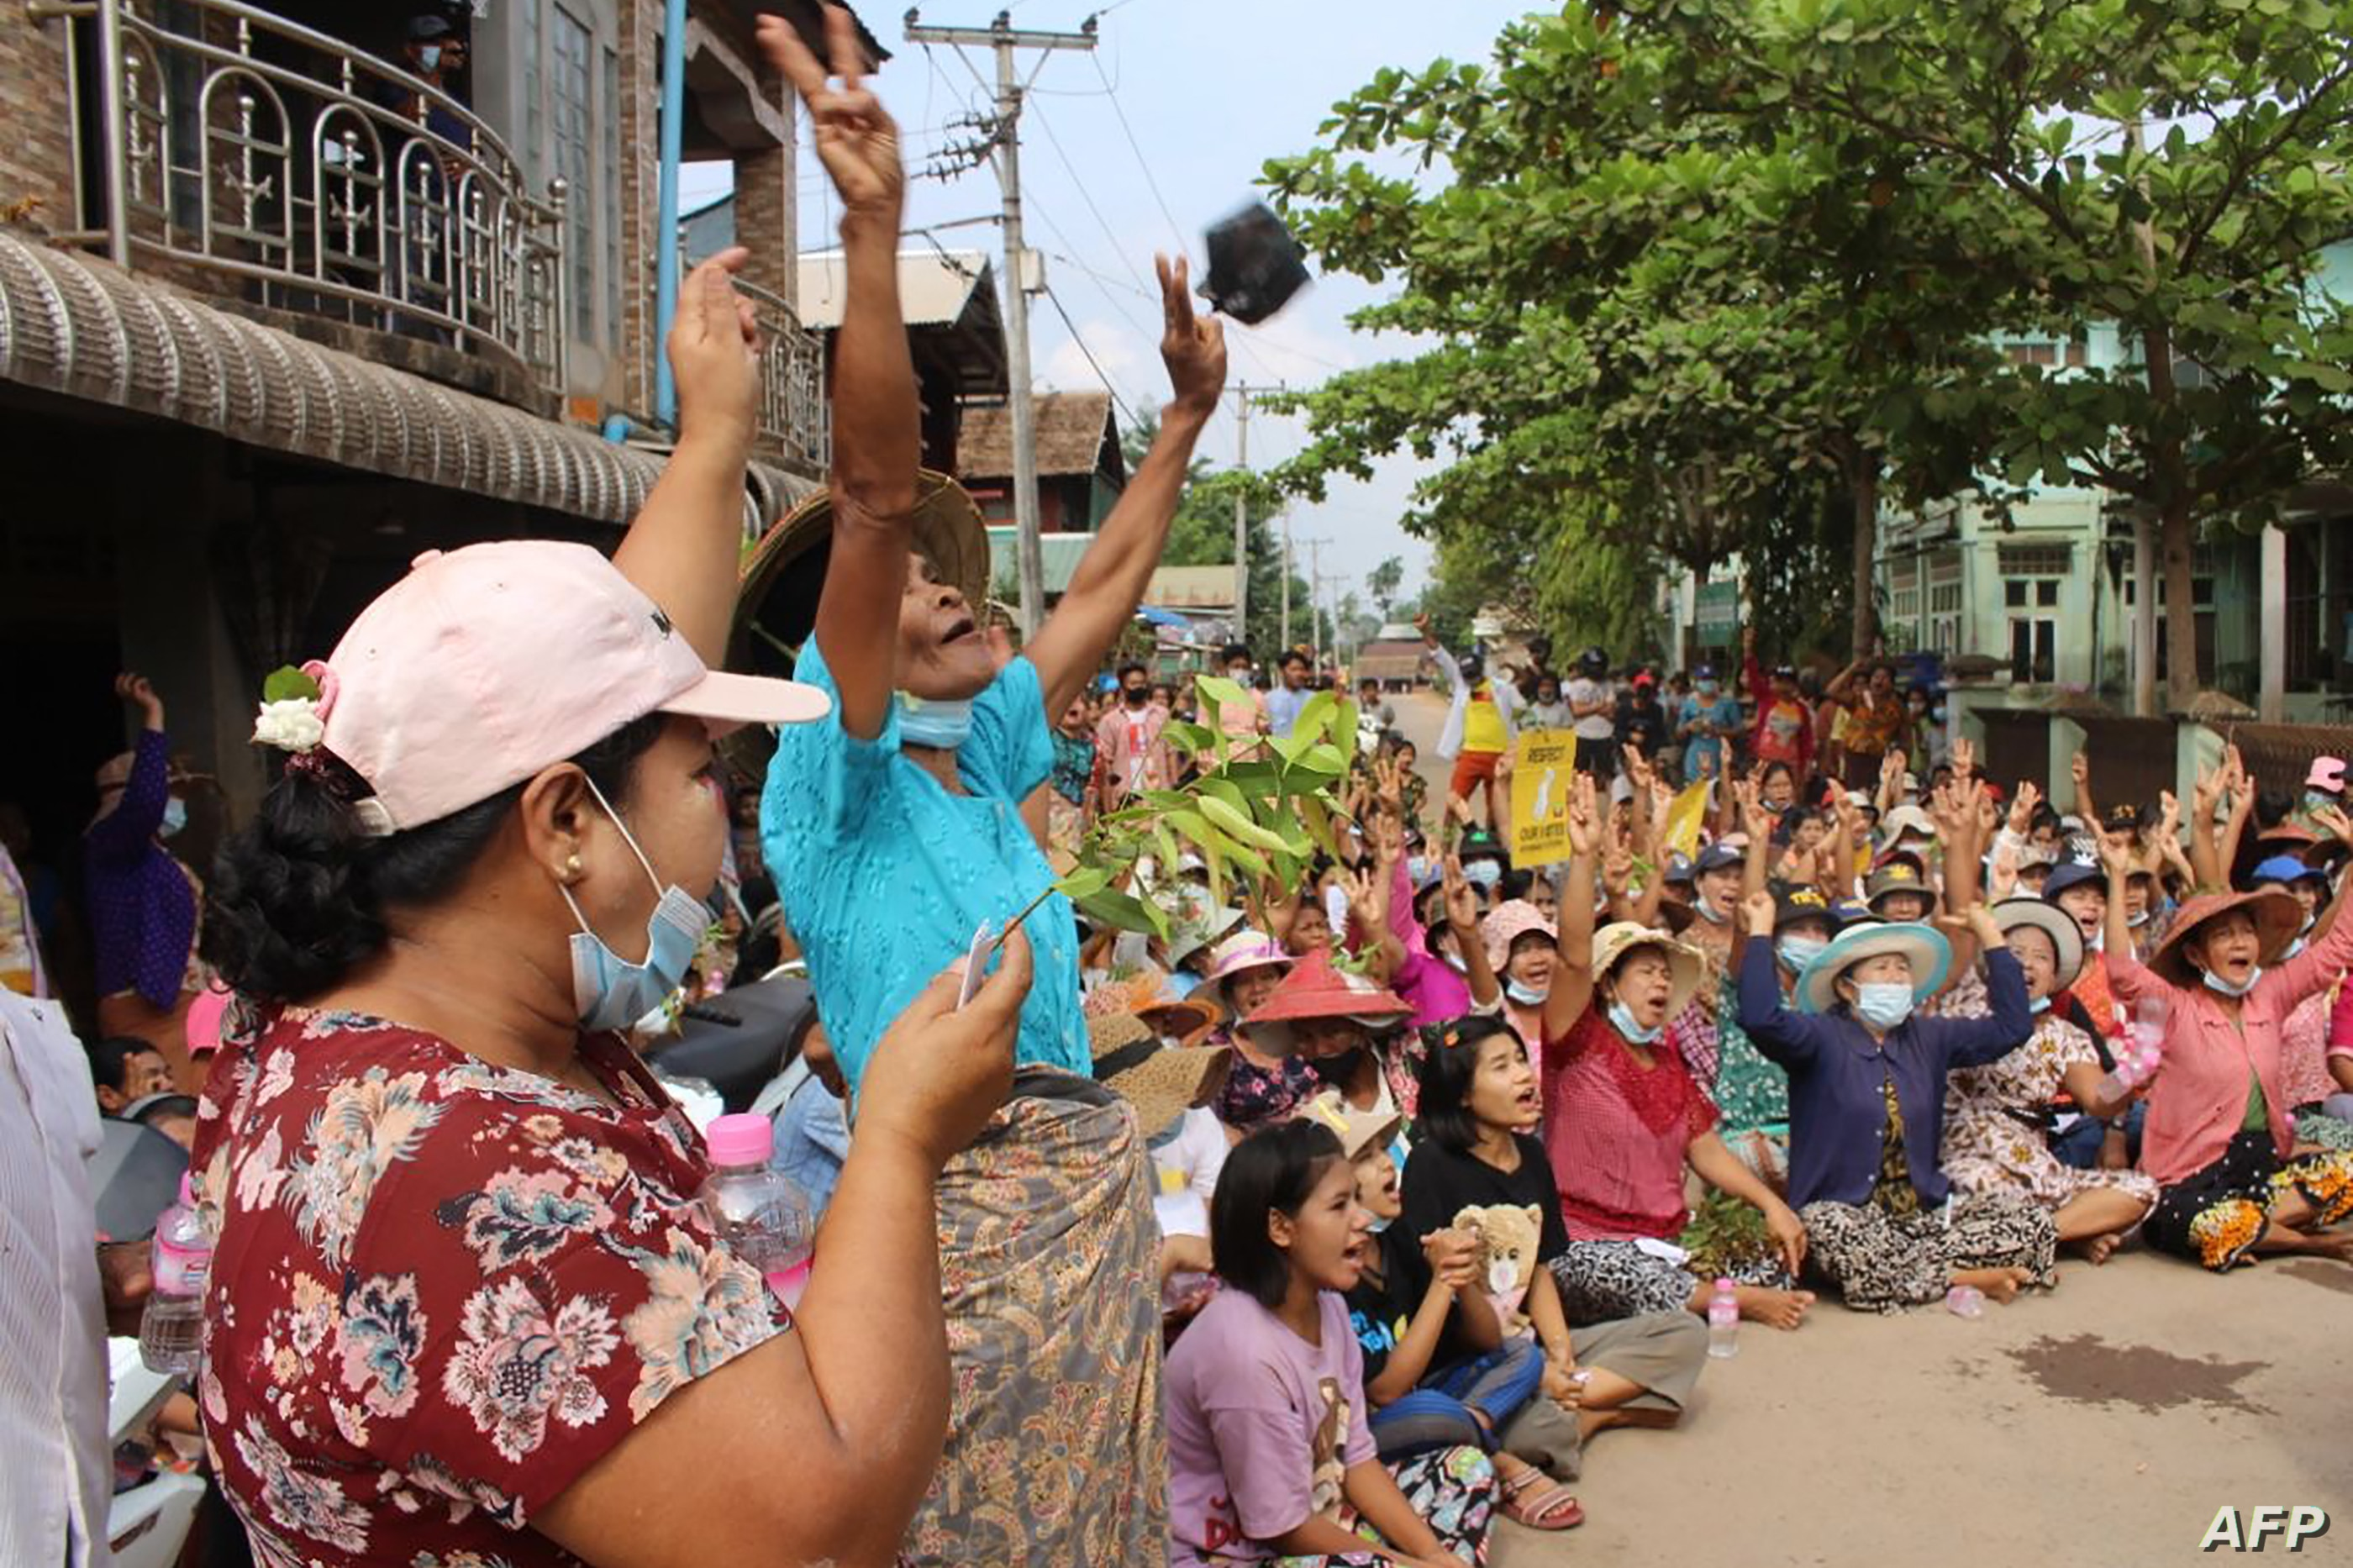 New Civilian Government Formed in Myanmar to Counter Military Regime